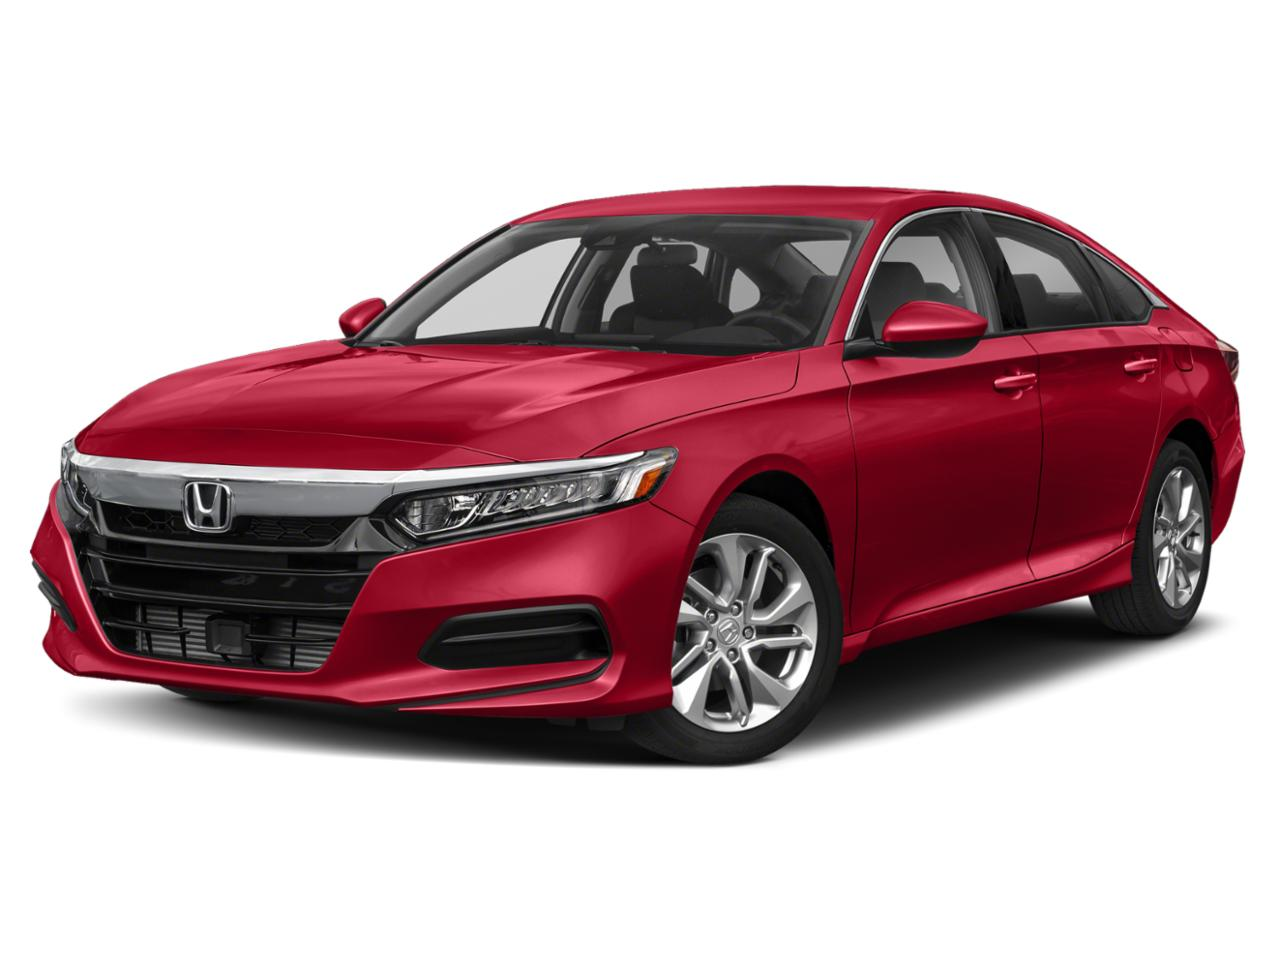 2019 Honda Accord Sedan LX 1.5T 4dr Car Slide